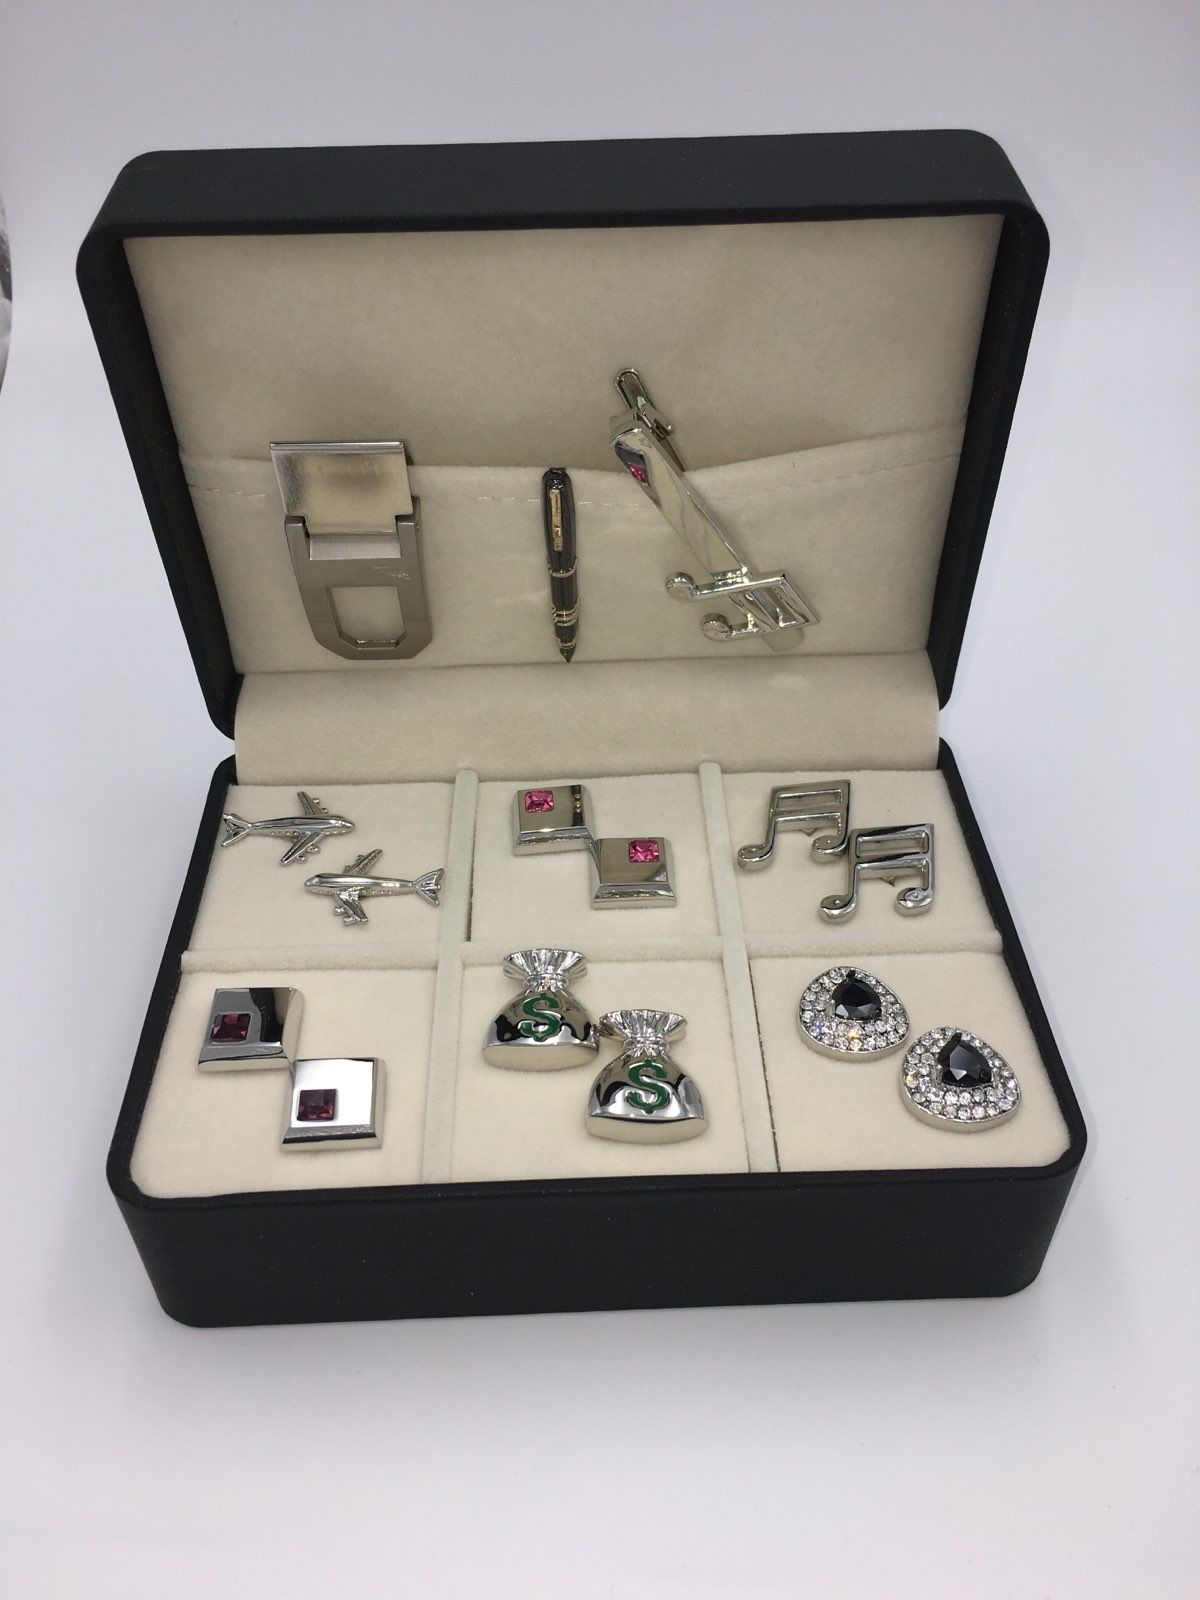 The Lind Box 6 Different Pairs of Cufflinks, Money Clip and a Tie Bars